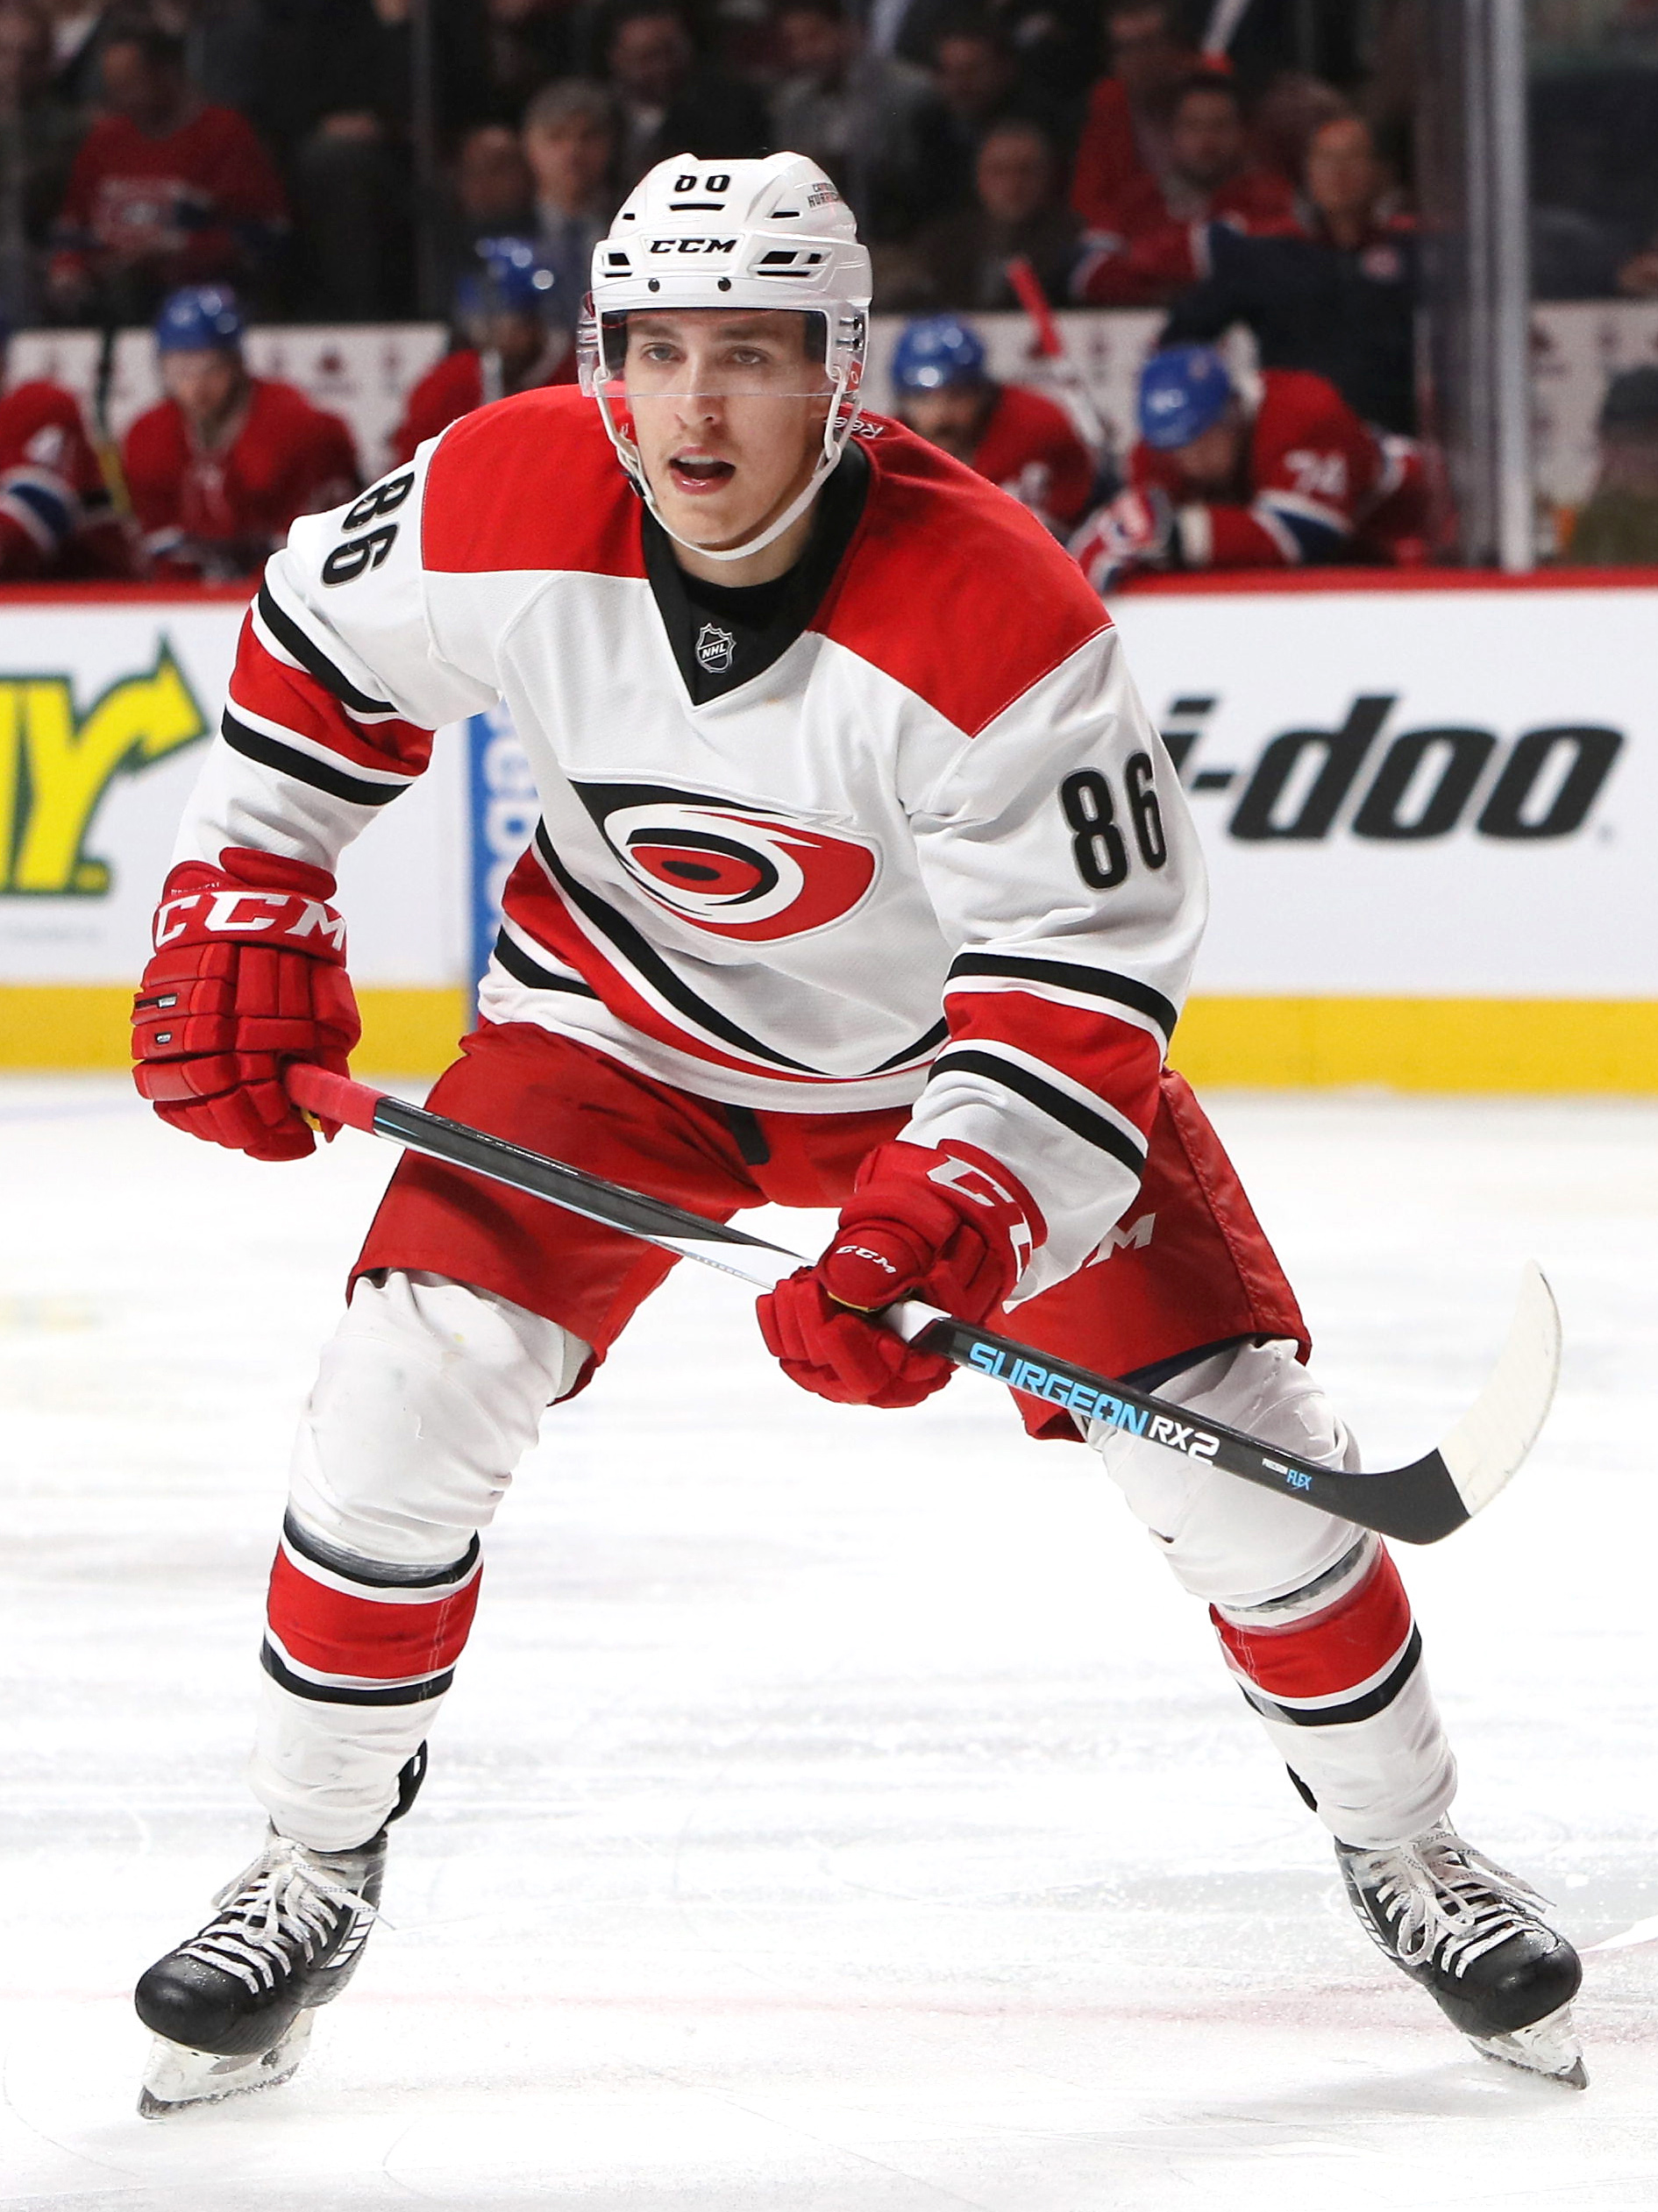 fc1eb4d5e Teravainen was acquired by the Hurricanes in a 2016 transaction that used  their cap space as an asset